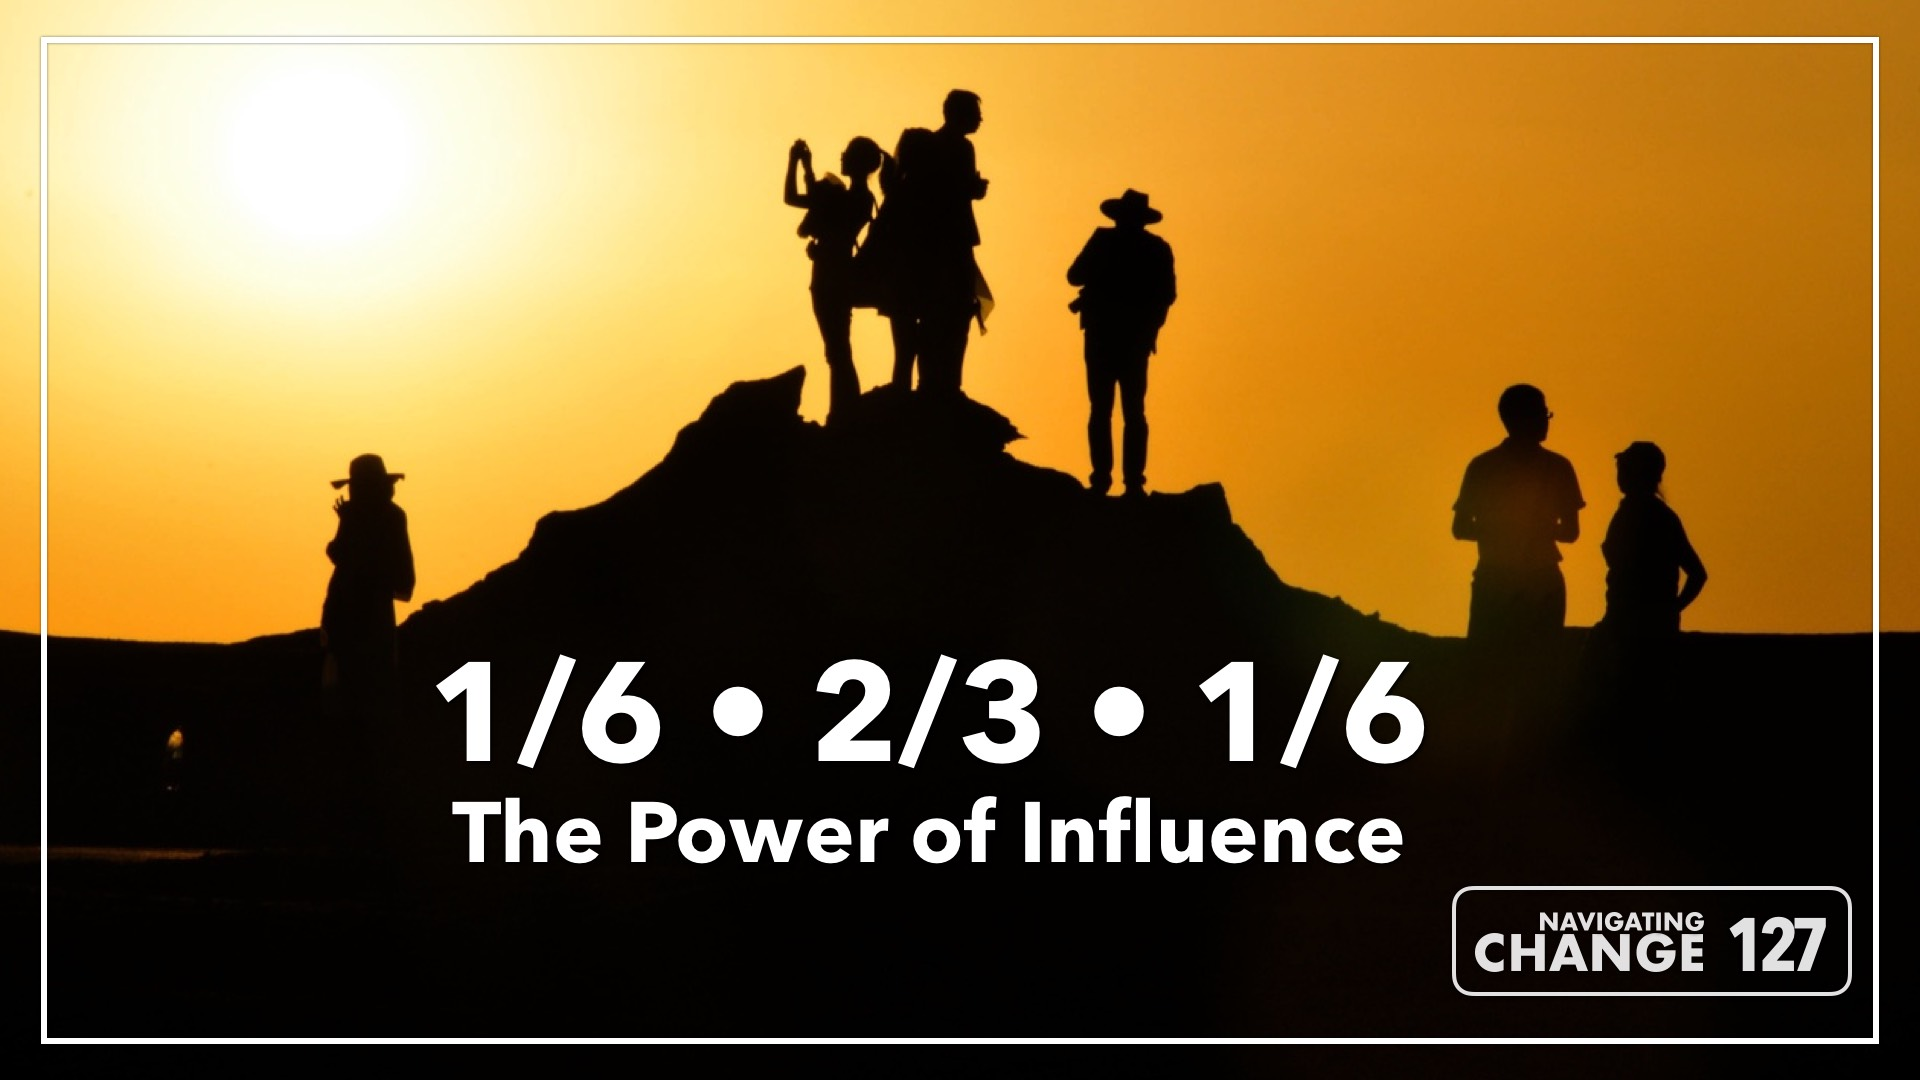 Listen to The Power of Influence on Navigating Change Podcast